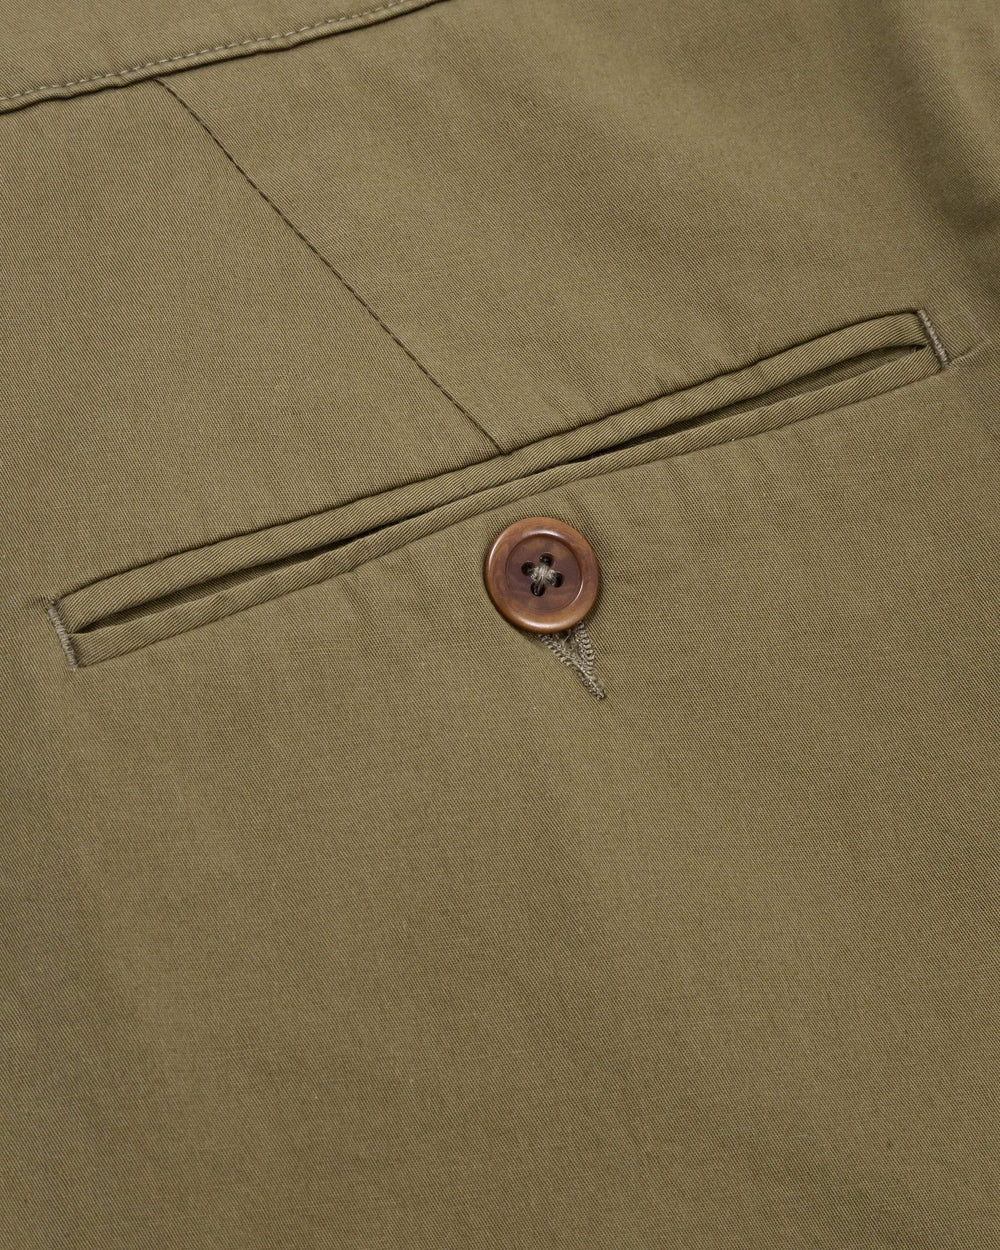 Brava Fabrics Pants Pleated Chino Camel